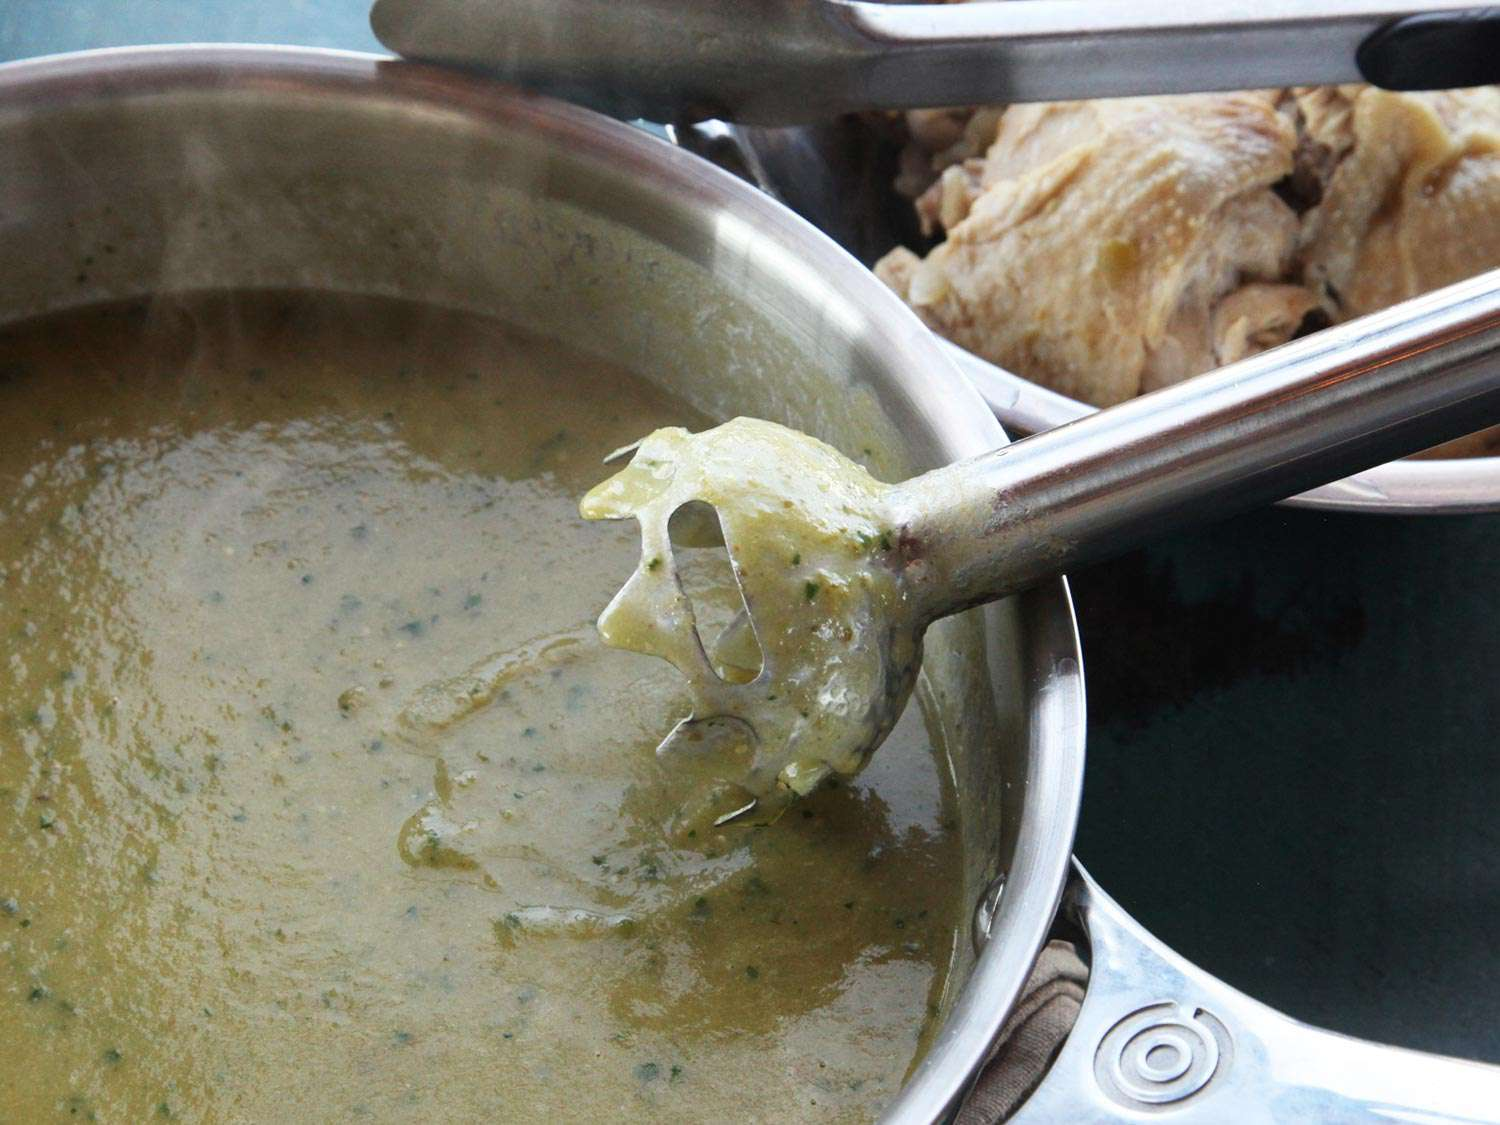 Pureeing chicken green chili (chile verde) sauce in a pot using a hand blender.